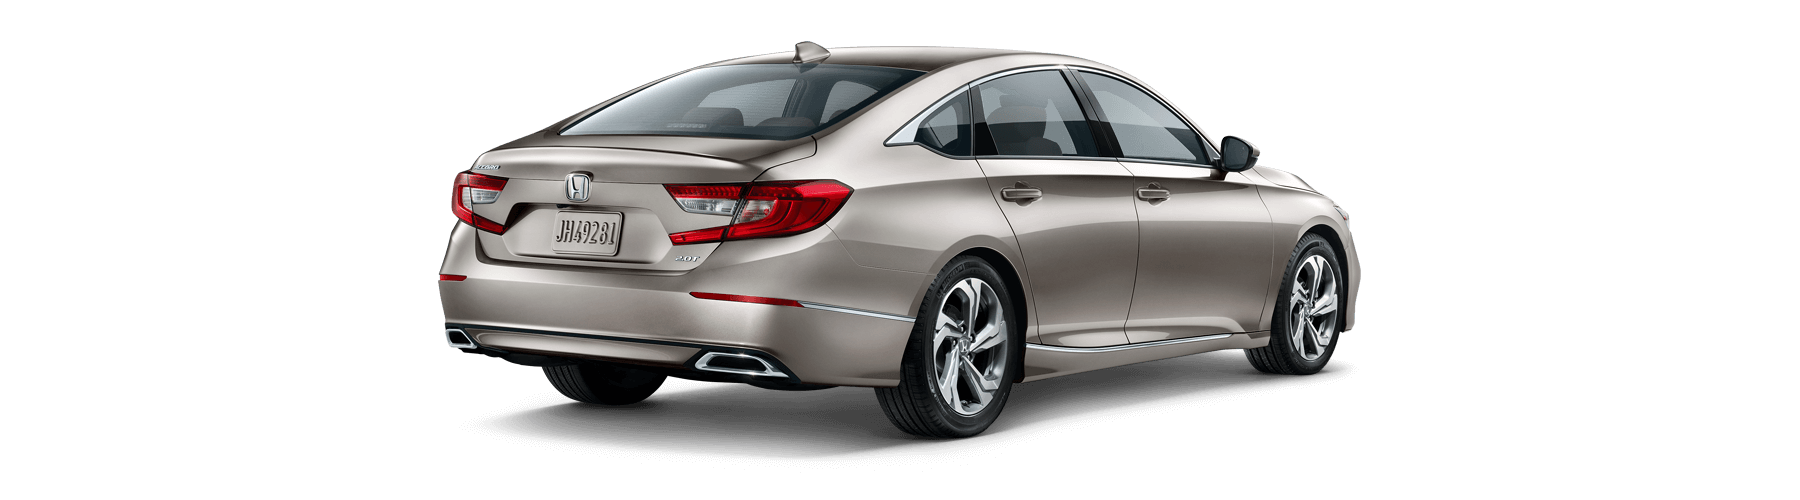 2019 Honda Accord Sedan Rear Angle